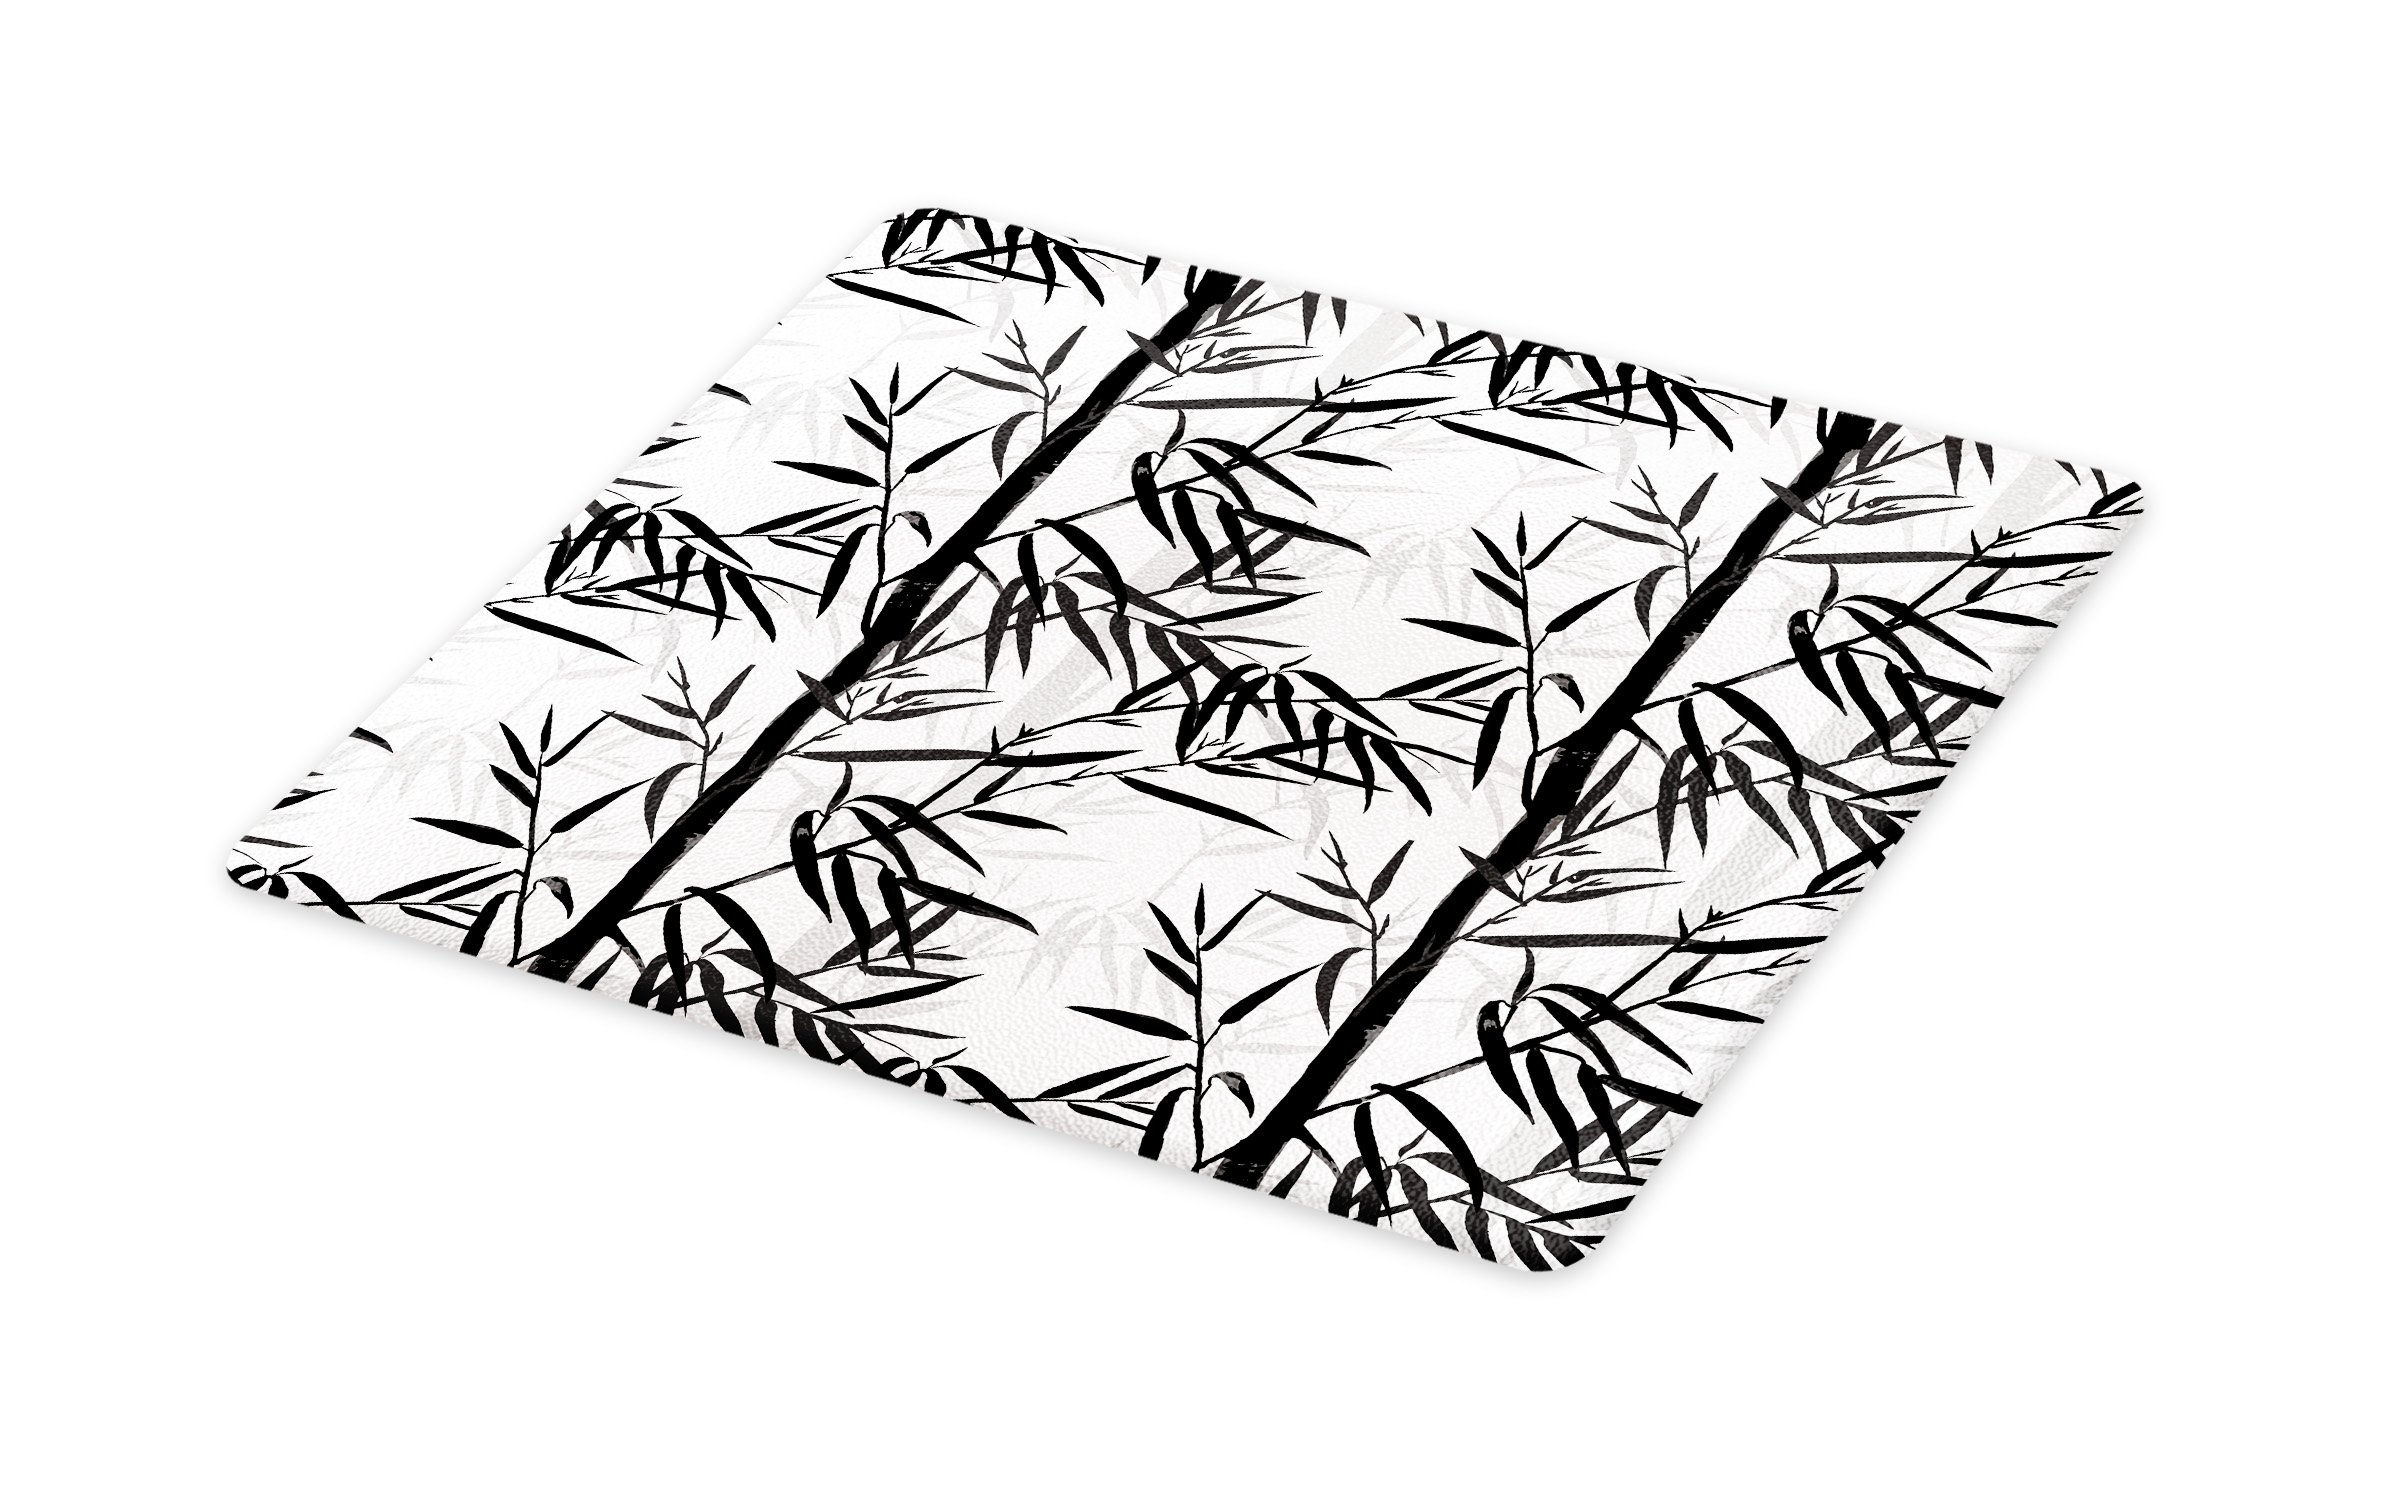 Lunarable Bamboo Cutting Board, Abstract Forest Leaves Floral Chinese Garden Plants Zen Spa Summer, Decorative Tempered Glass Cutting and Serving Board, Small Size, Black Charcoal Grey White